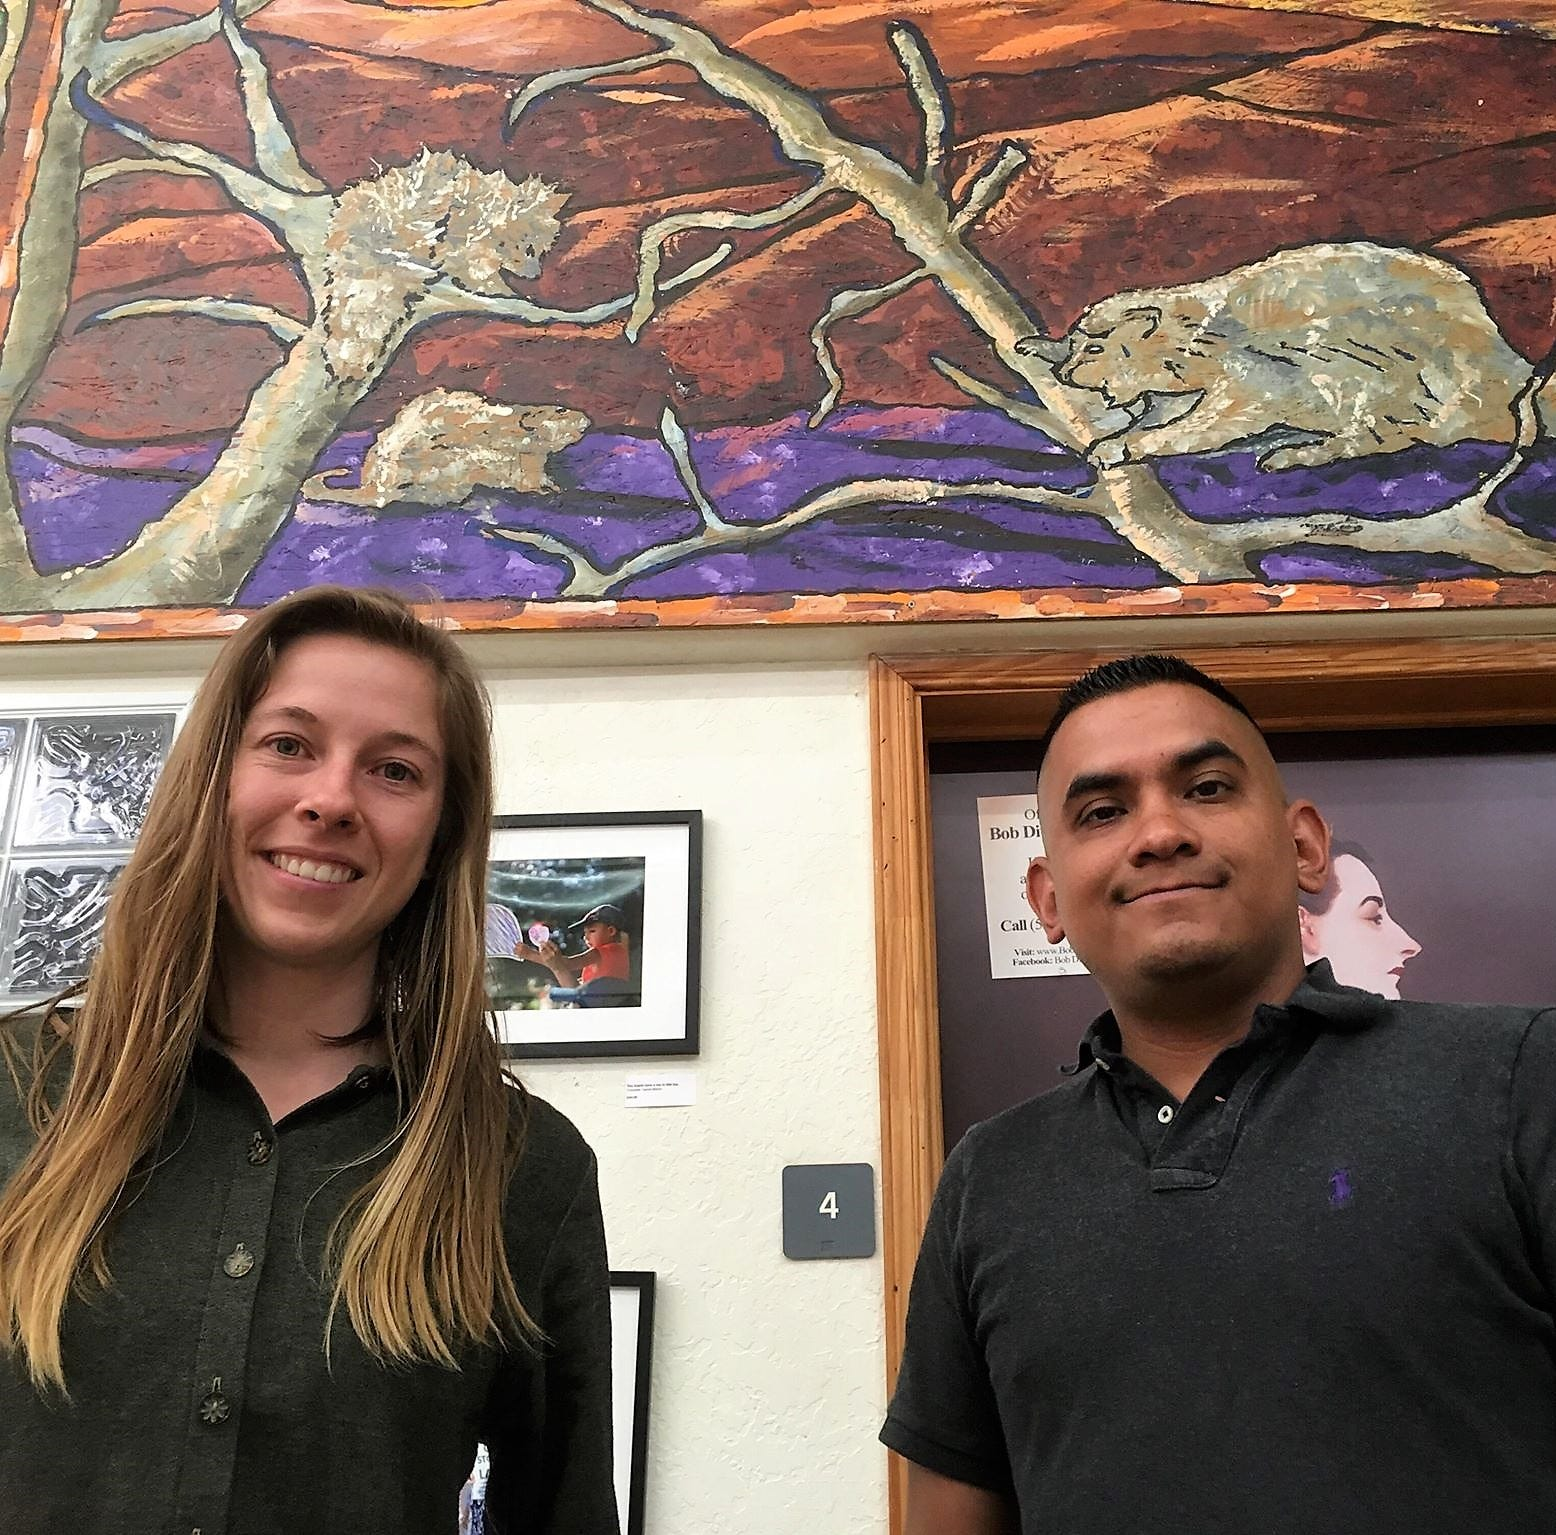 Art exhibit presents beauty and human connection in political struggle